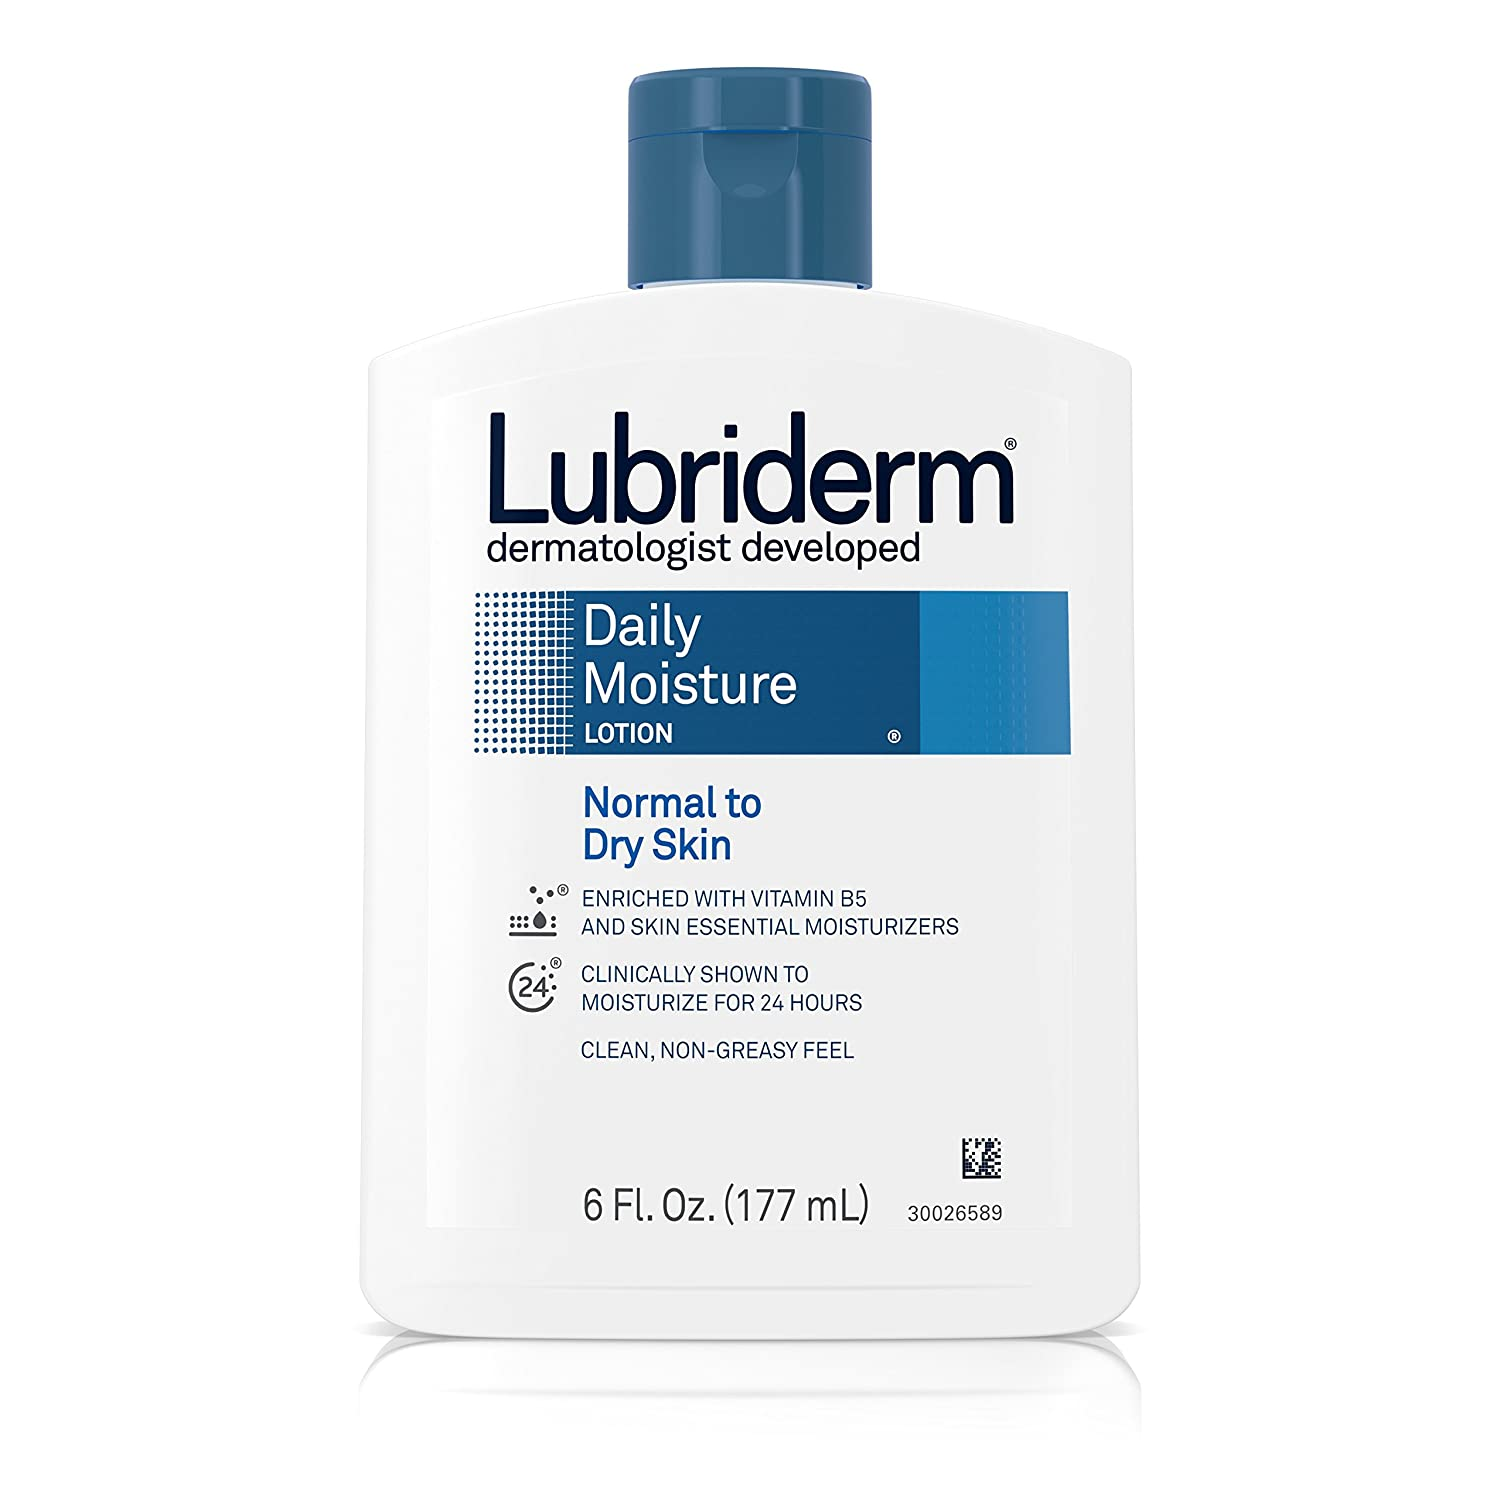 Lubriderm Daily Moisture Lotion, Normal to Dry Skin, 6 oz, 2 pk